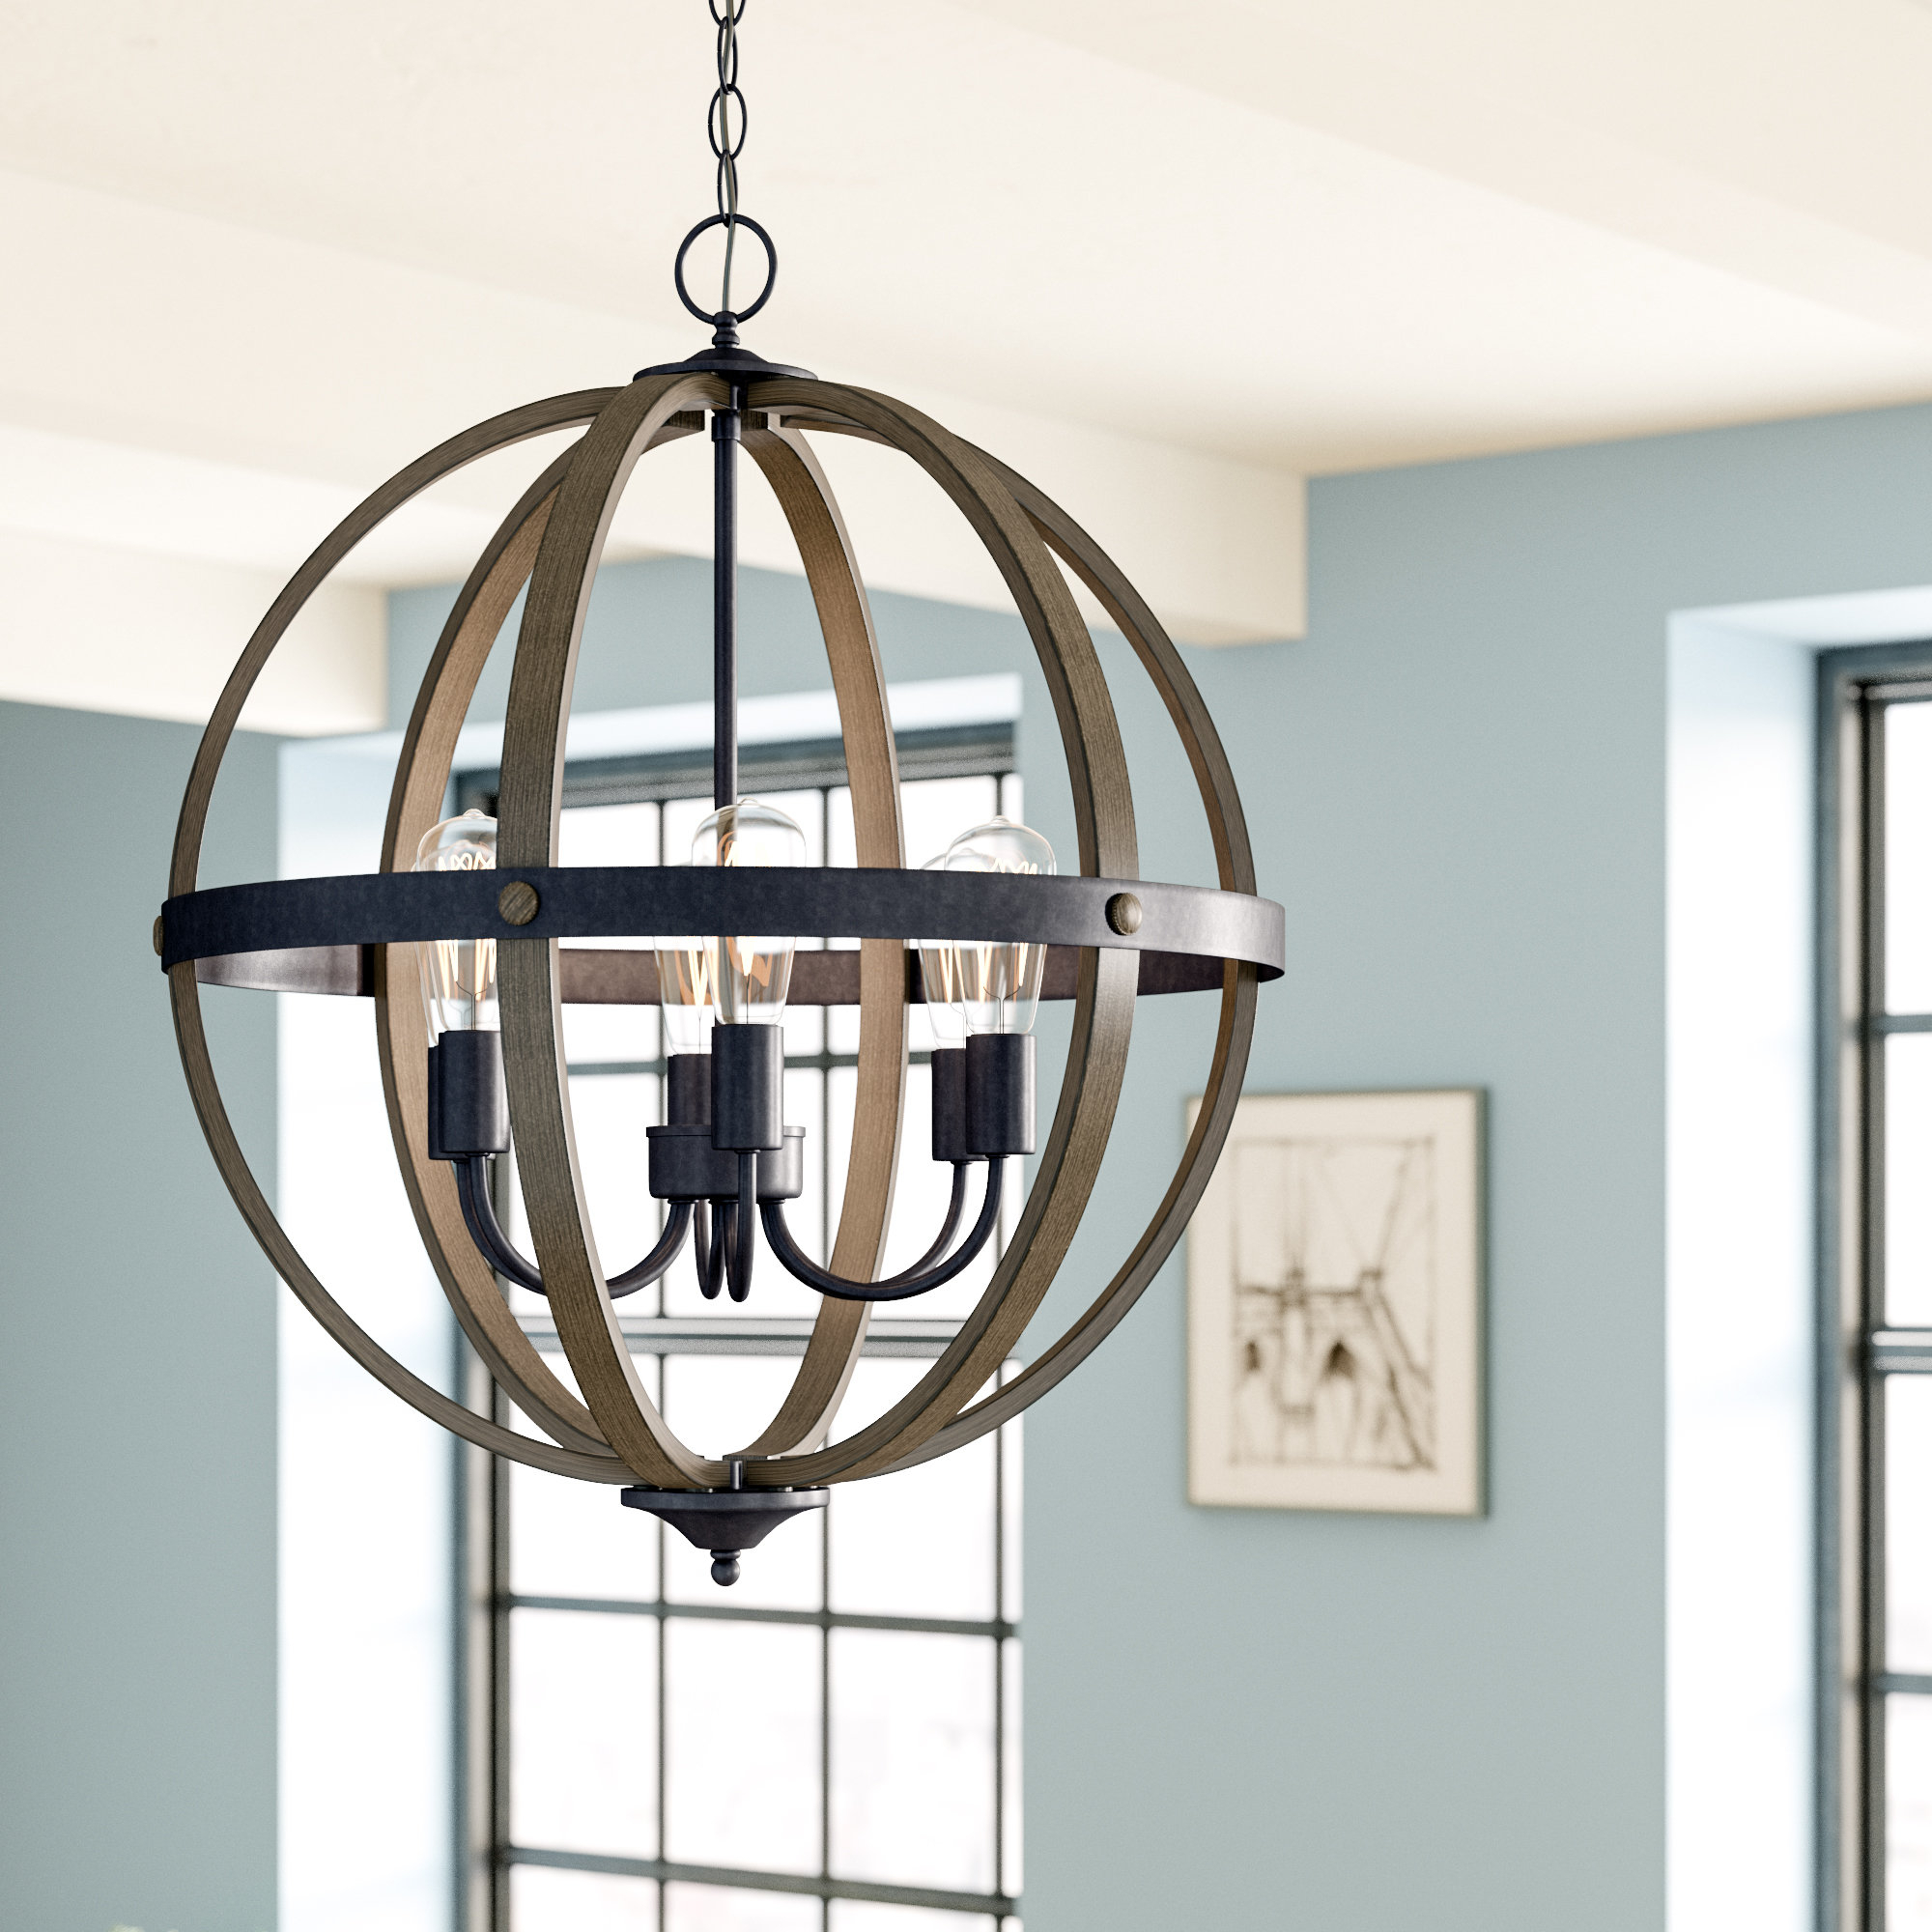 [%Globe Chandeliers Sale – Up To 65% Off Until September 30Th Pertaining To Fashionable Shipststour 3 Light Globe Chandeliers|Shipststour 3 Light Globe Chandeliers With Most Popular Globe Chandeliers Sale – Up To 65% Off Until September 30Th|Recent Shipststour 3 Light Globe Chandeliers Throughout Globe Chandeliers Sale – Up To 65% Off Until September 30Th|Popular Globe Chandeliers Sale – Up To 65% Off Until September 30Th Within Shipststour 3 Light Globe Chandeliers%] (View 22 of 25)